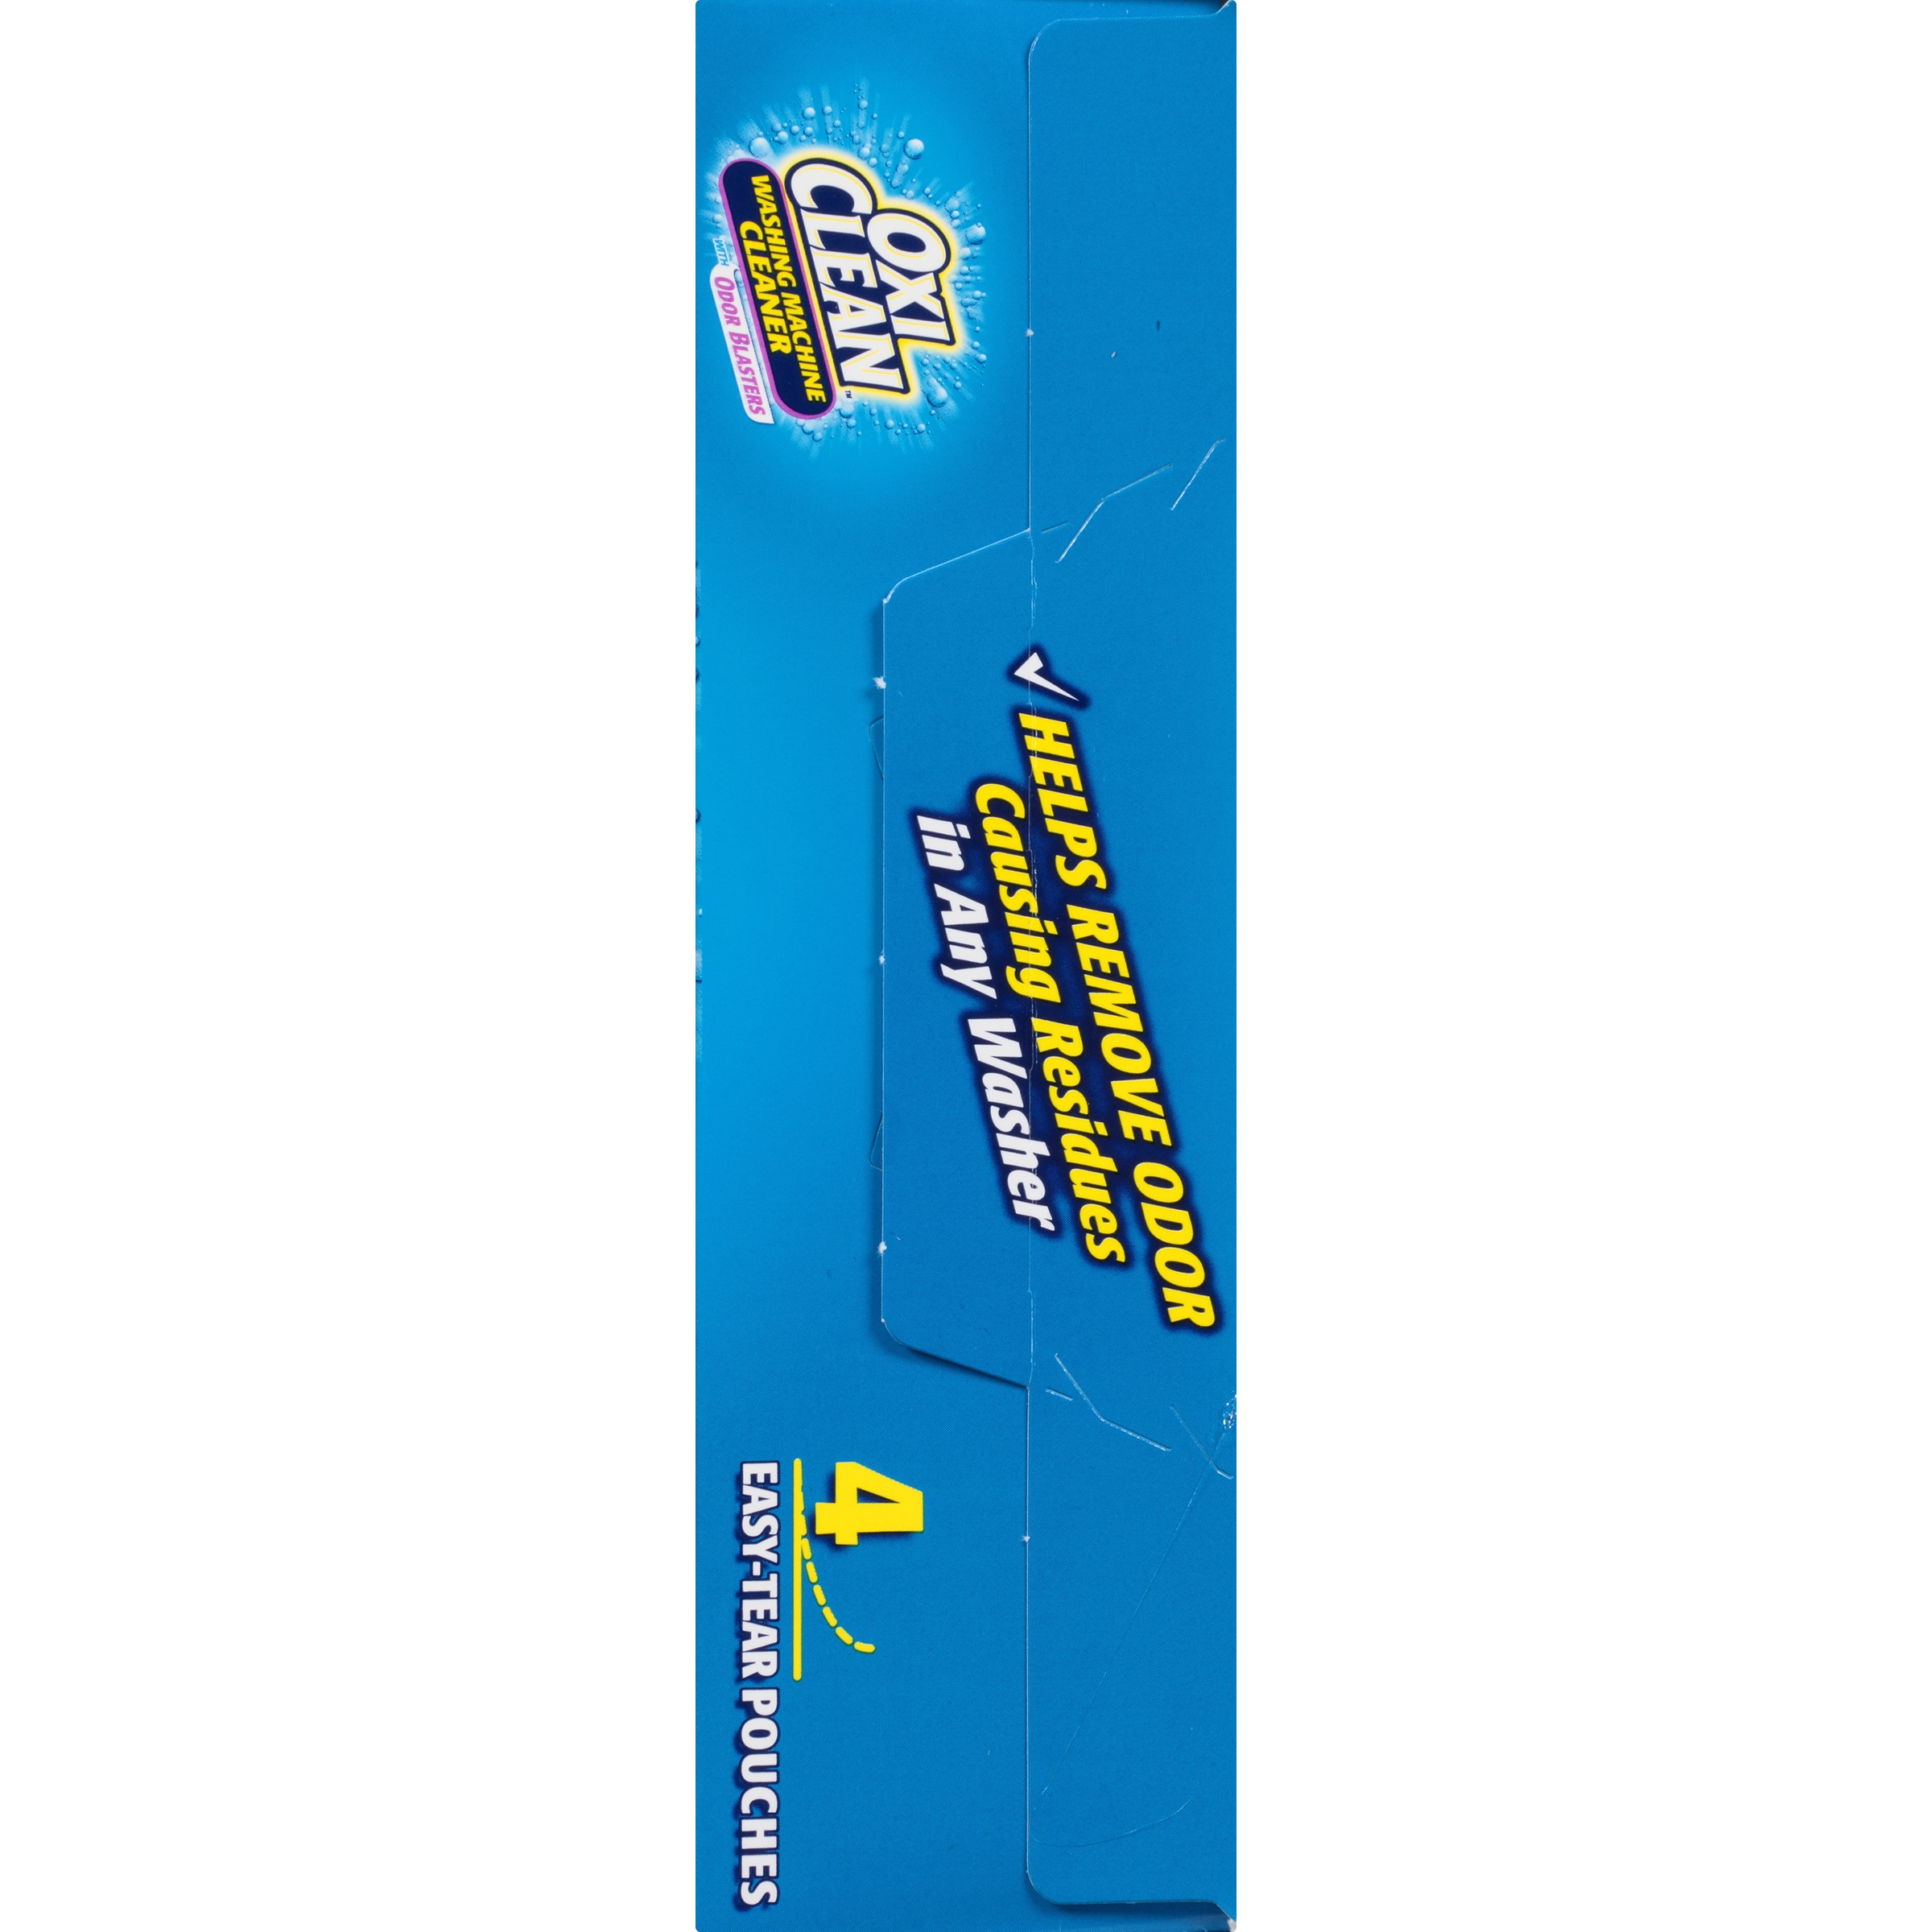 Oxiclean Washing Machine Cleaner 4 Count Cleaner Removes